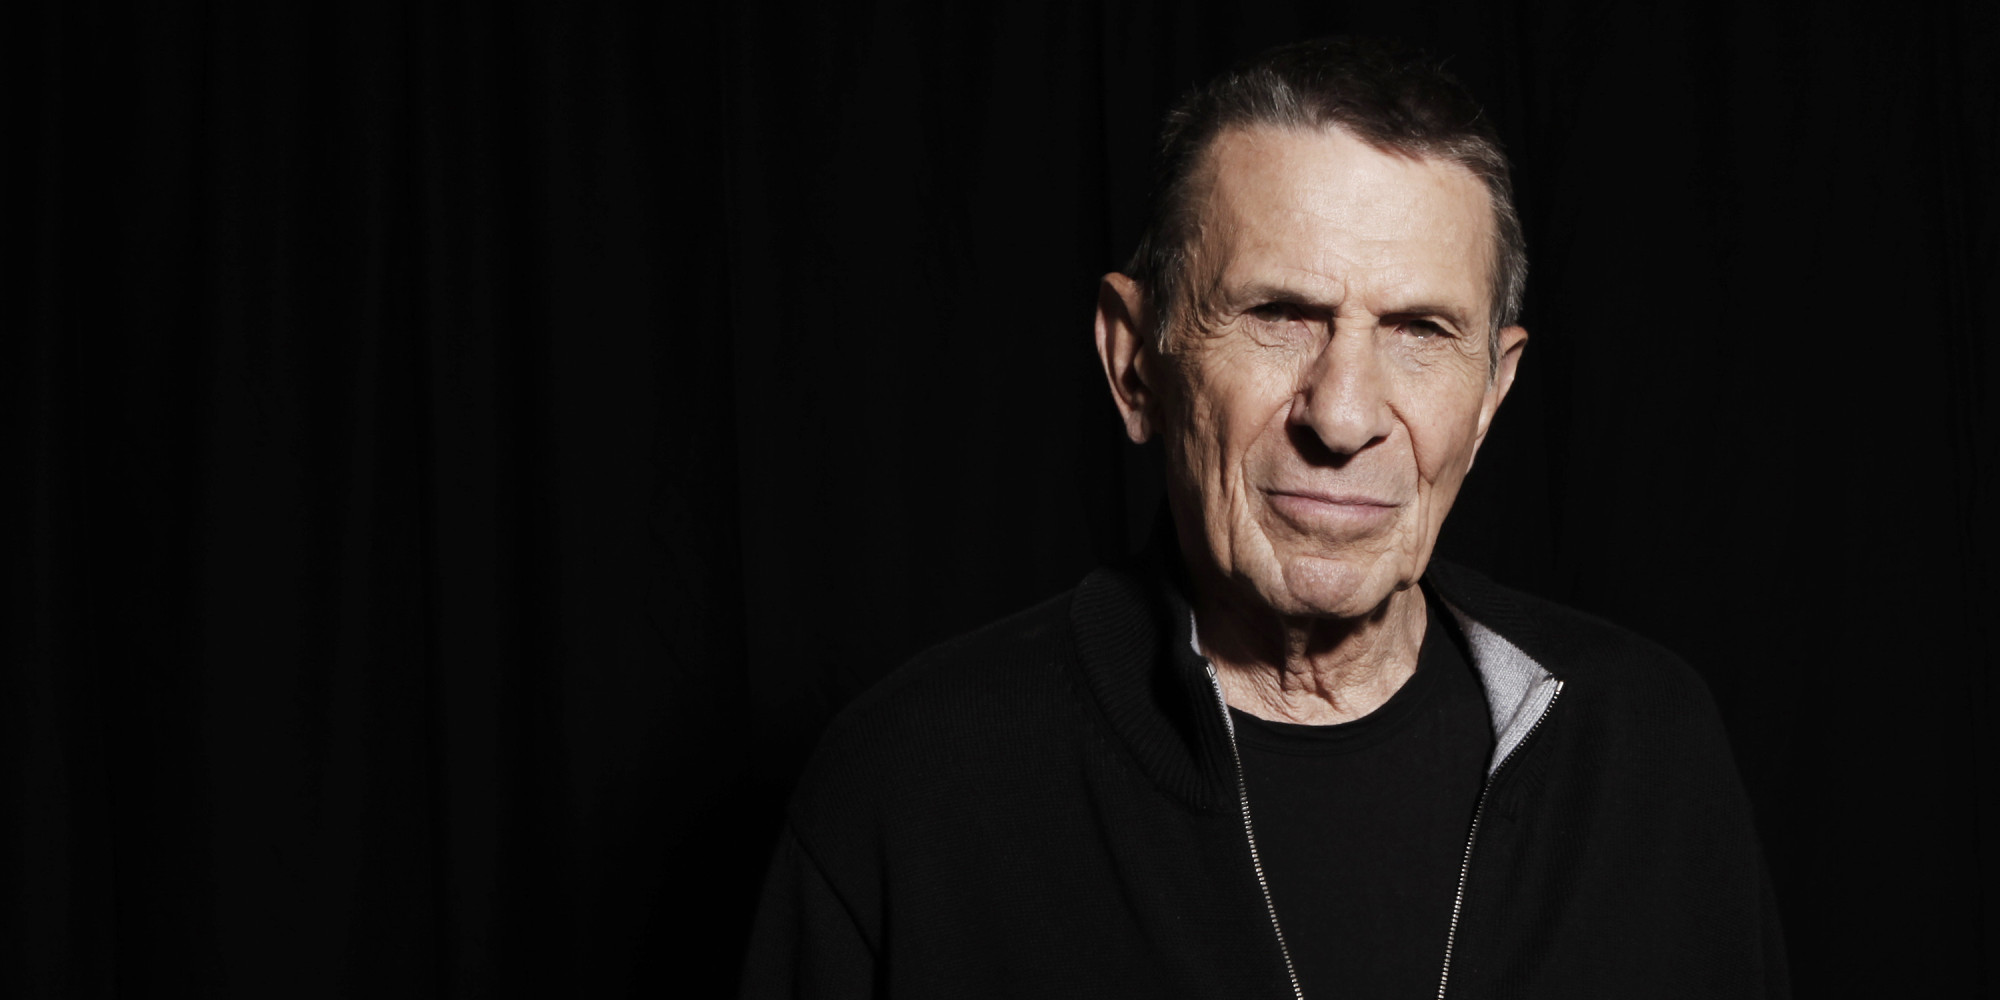 Leonard Nimoy Quotes Classy These Are Leonard Nimoy's Touching Final Words Of Wisdom  Huffpost